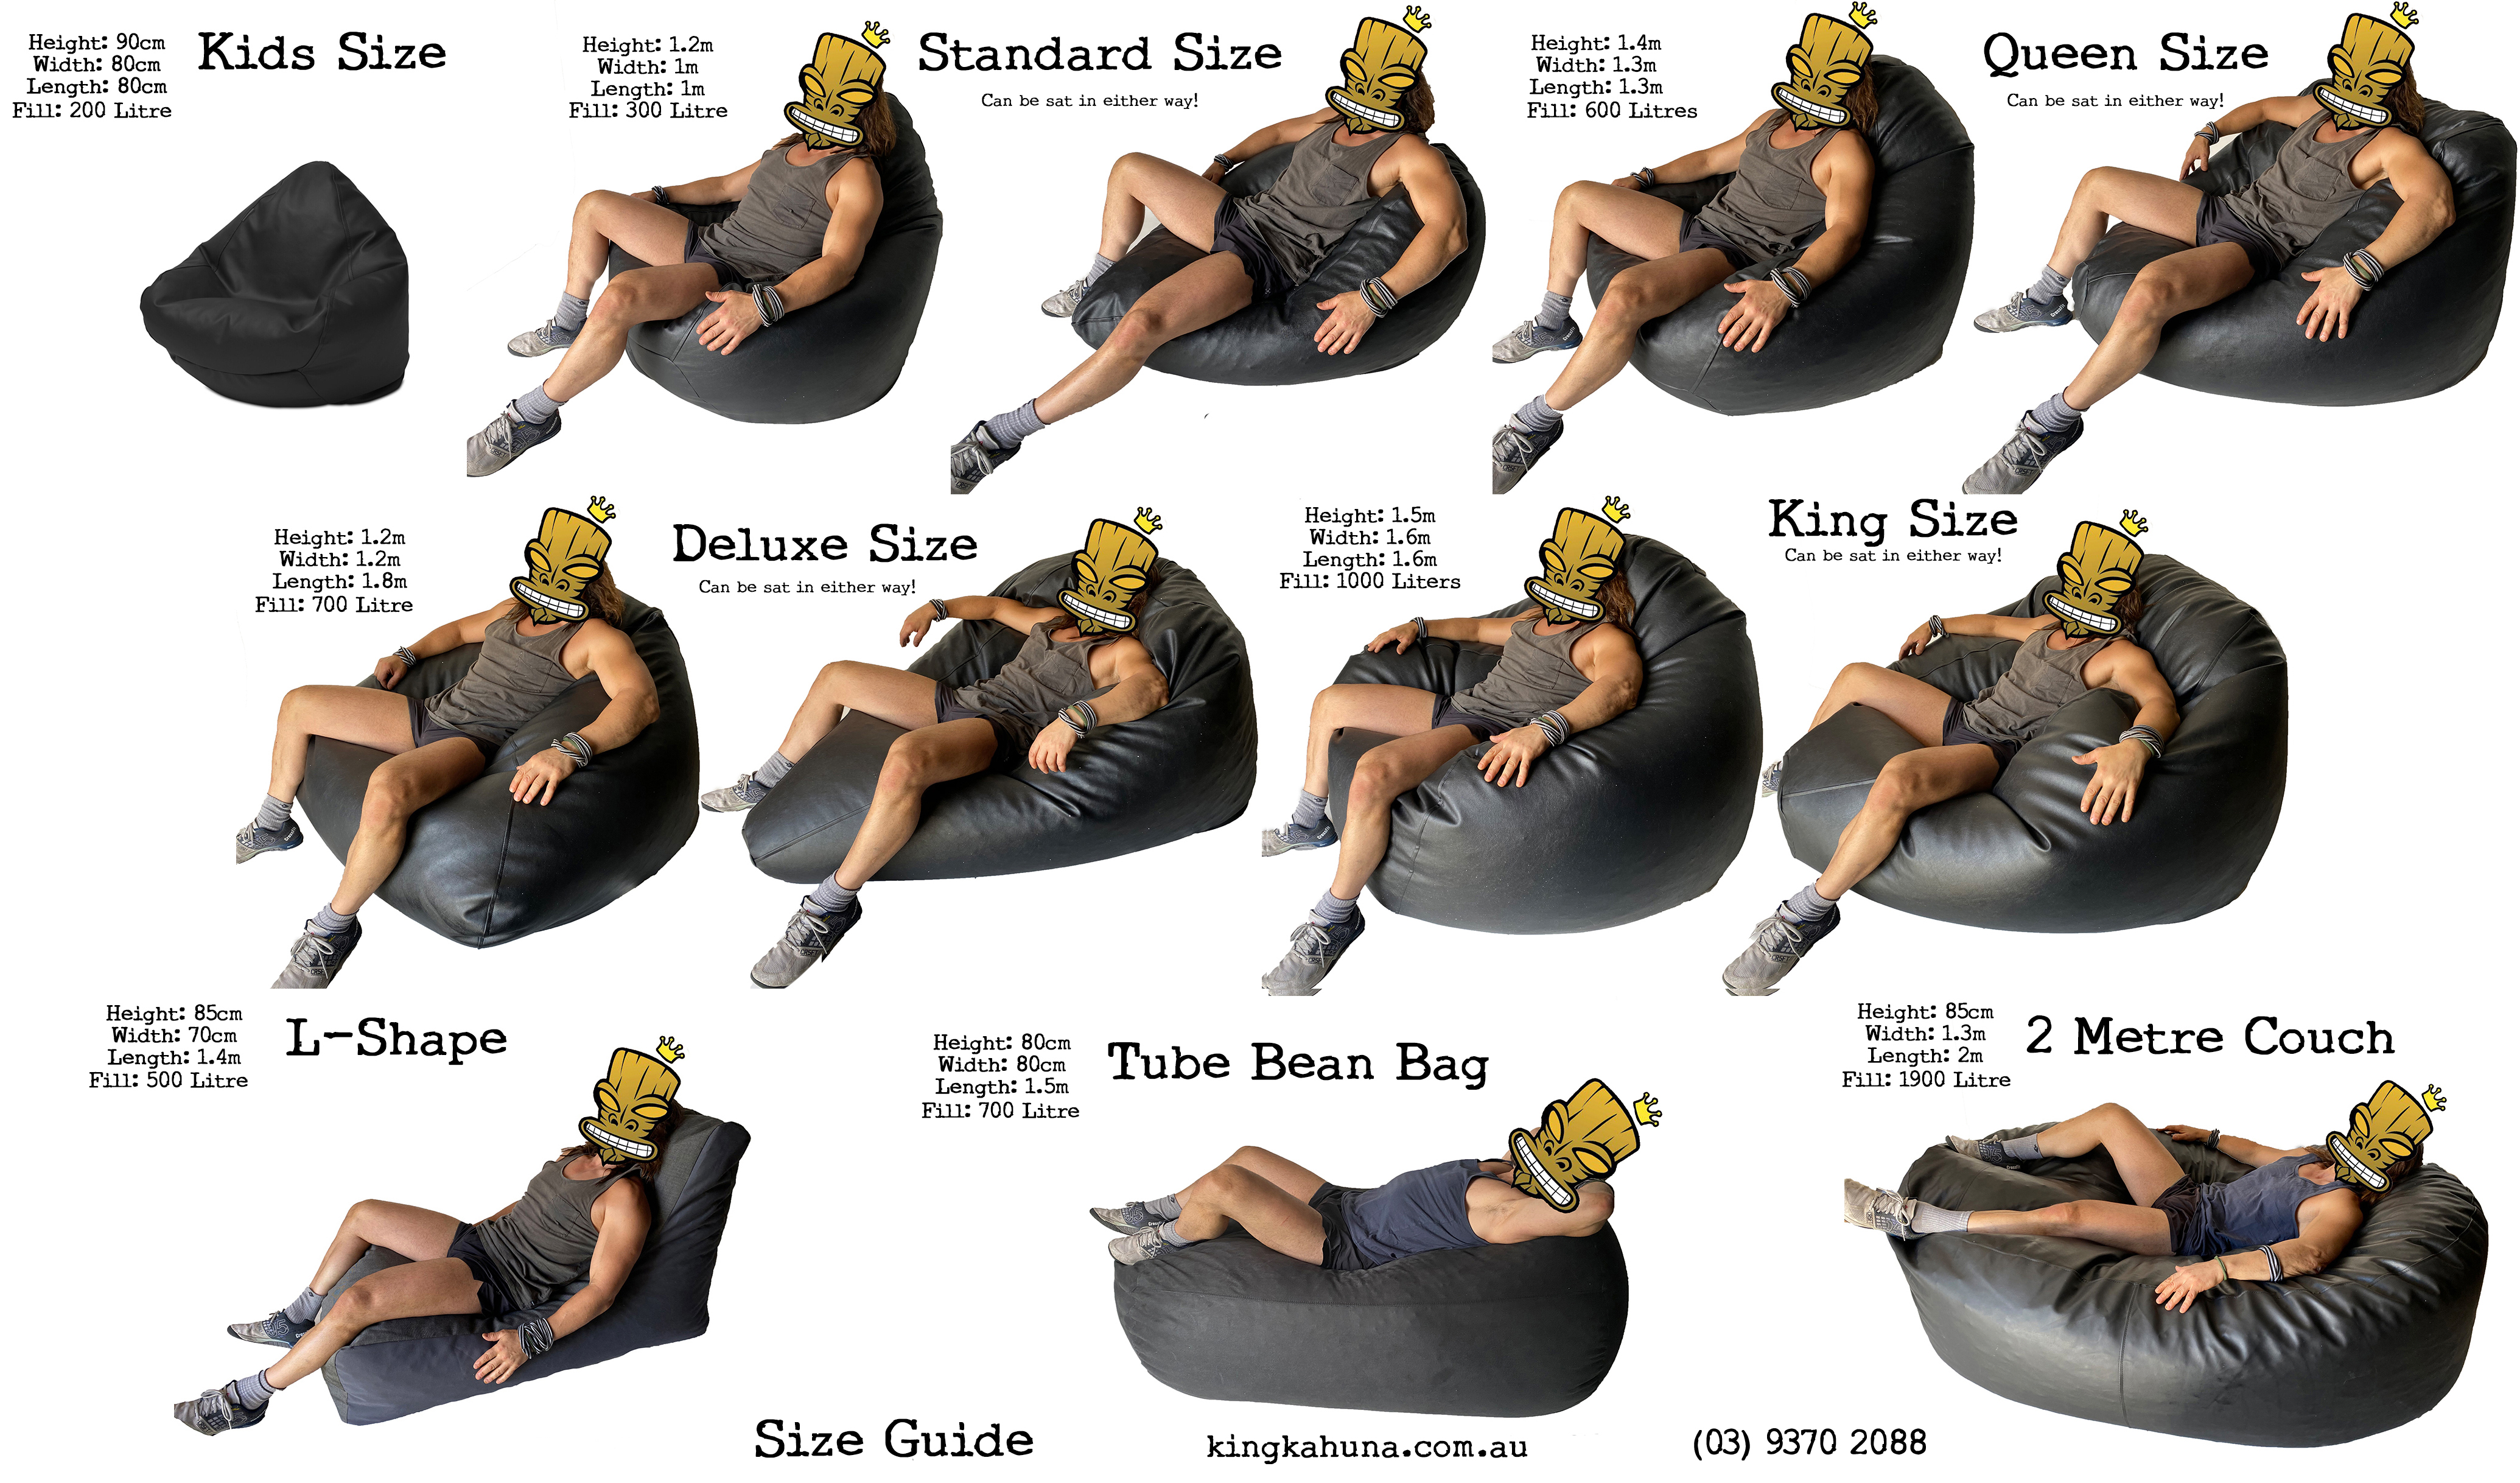 Sunbrella Outdoor King Size Bean Bag In Assorted Colours.